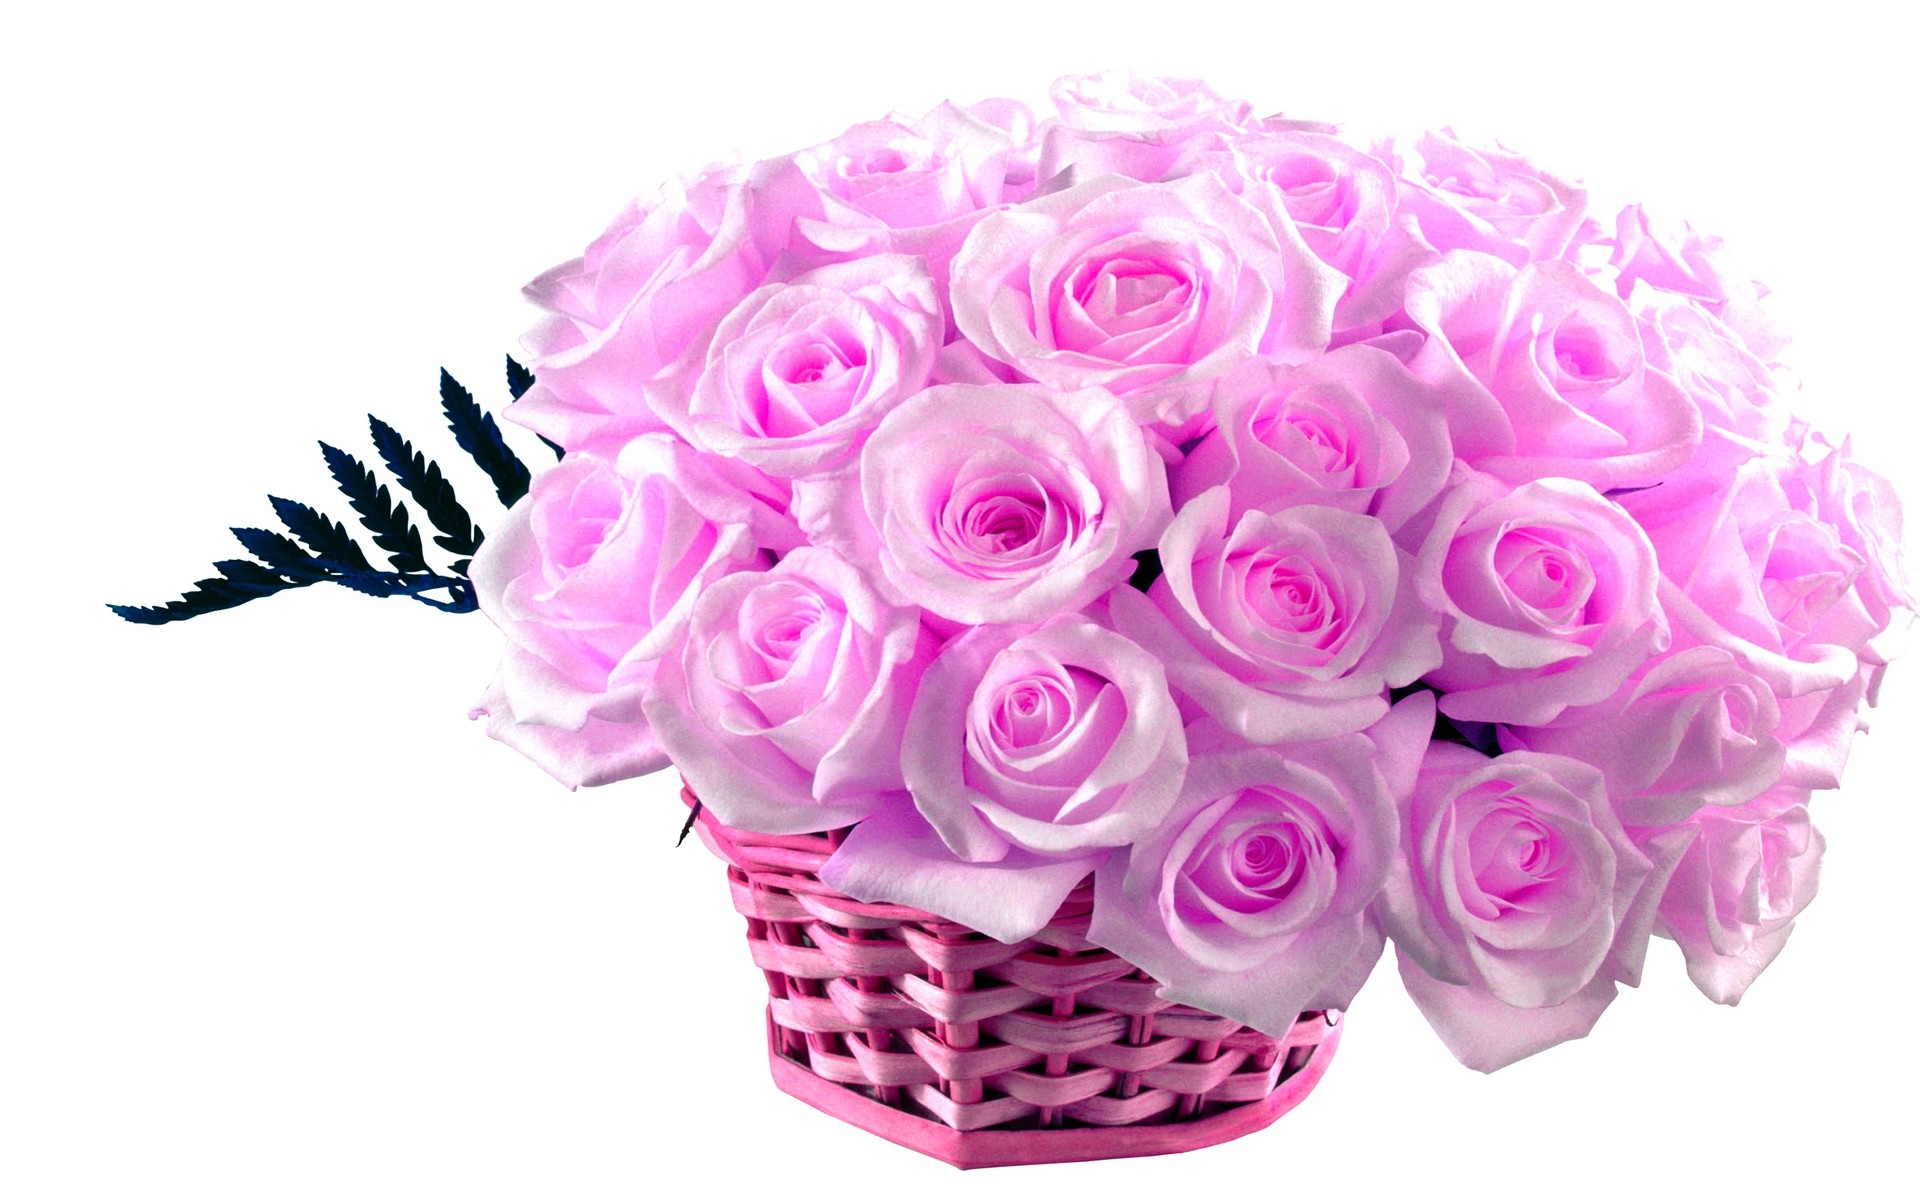 Res: 1920x1200, pink rose bouquet